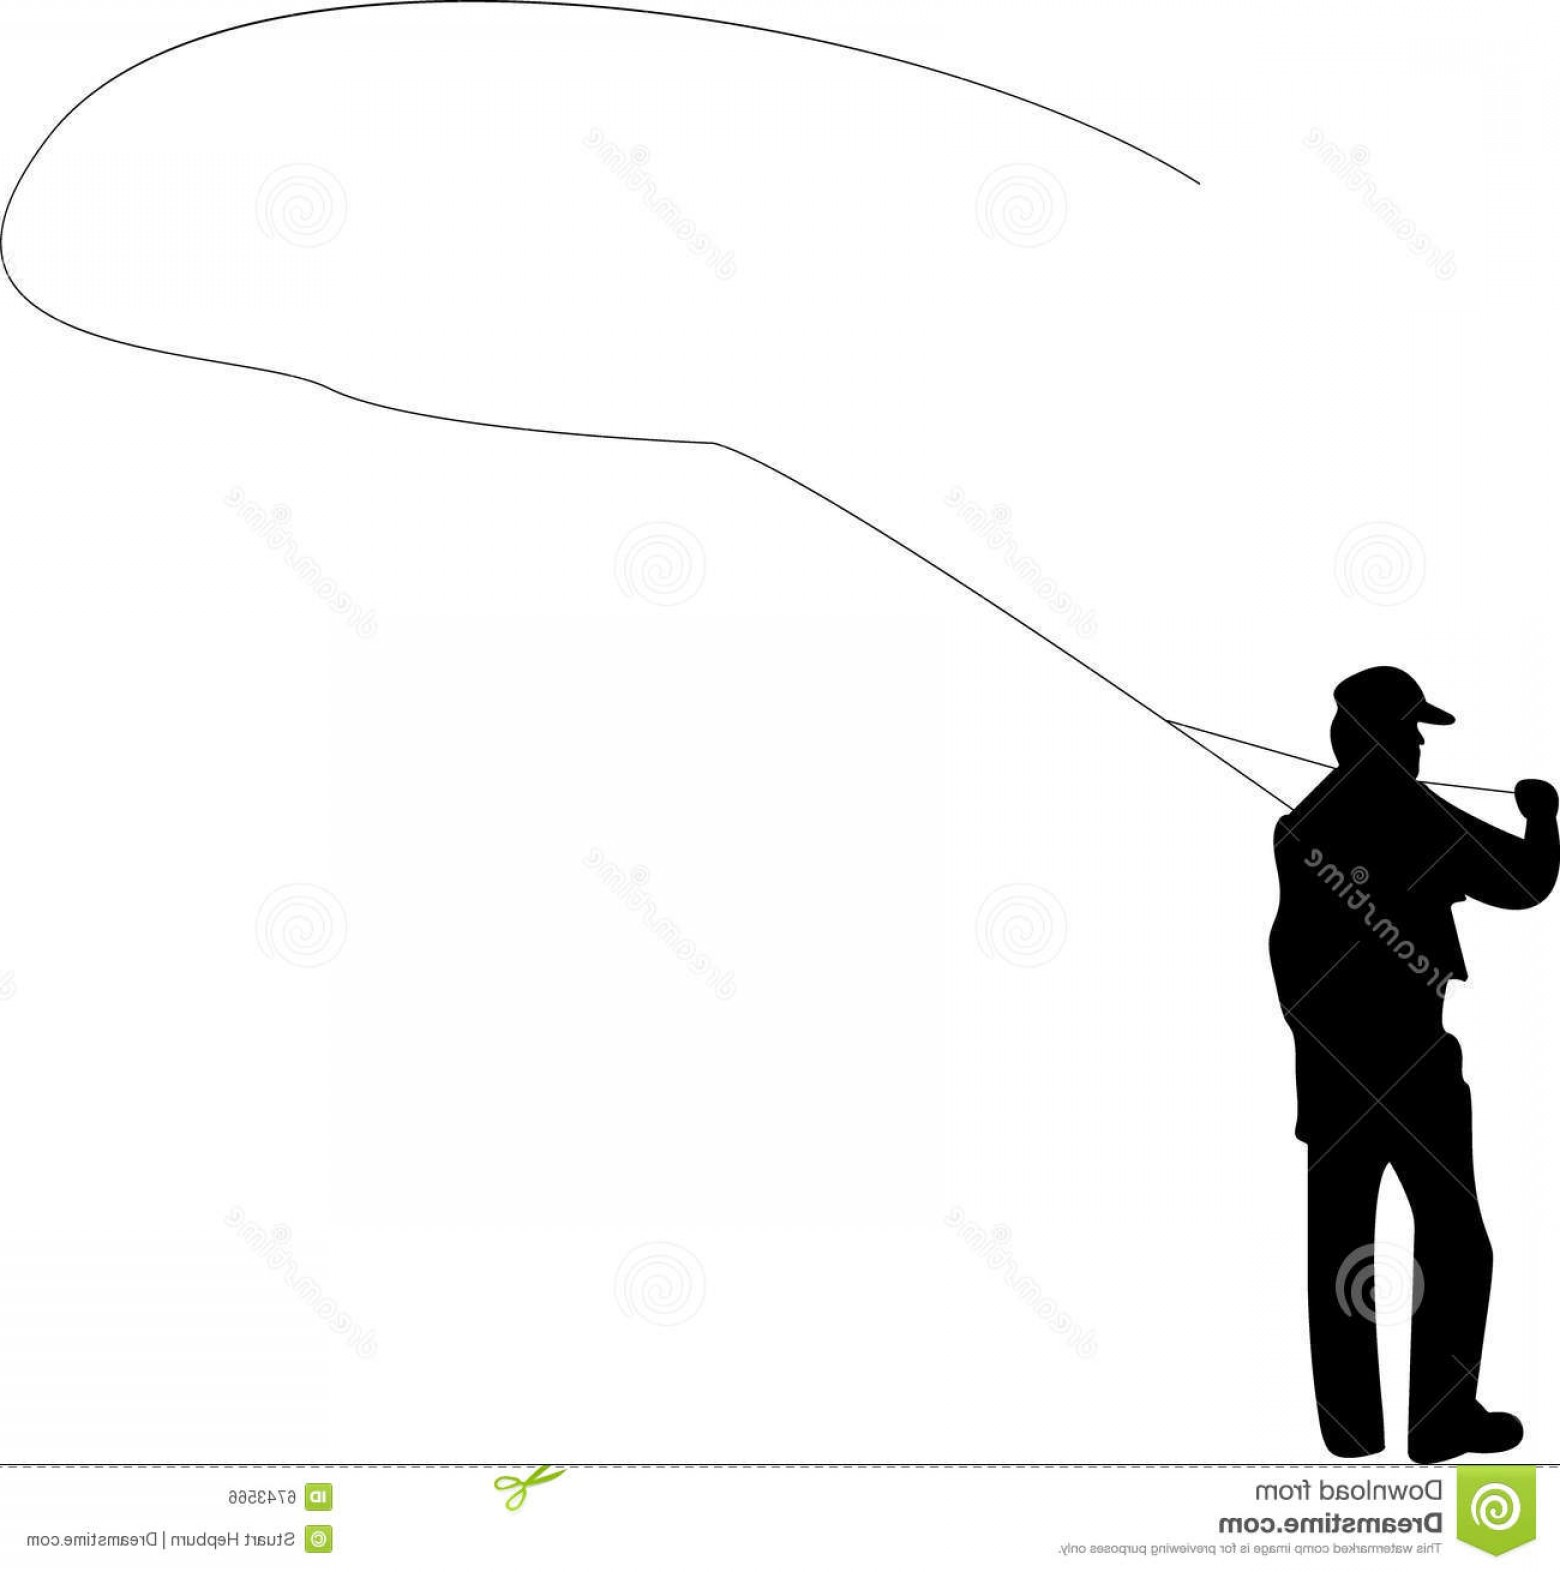 Detailed Vector Art Fly Fisherman: Royalty Free Stock Image Fly Fishing Image